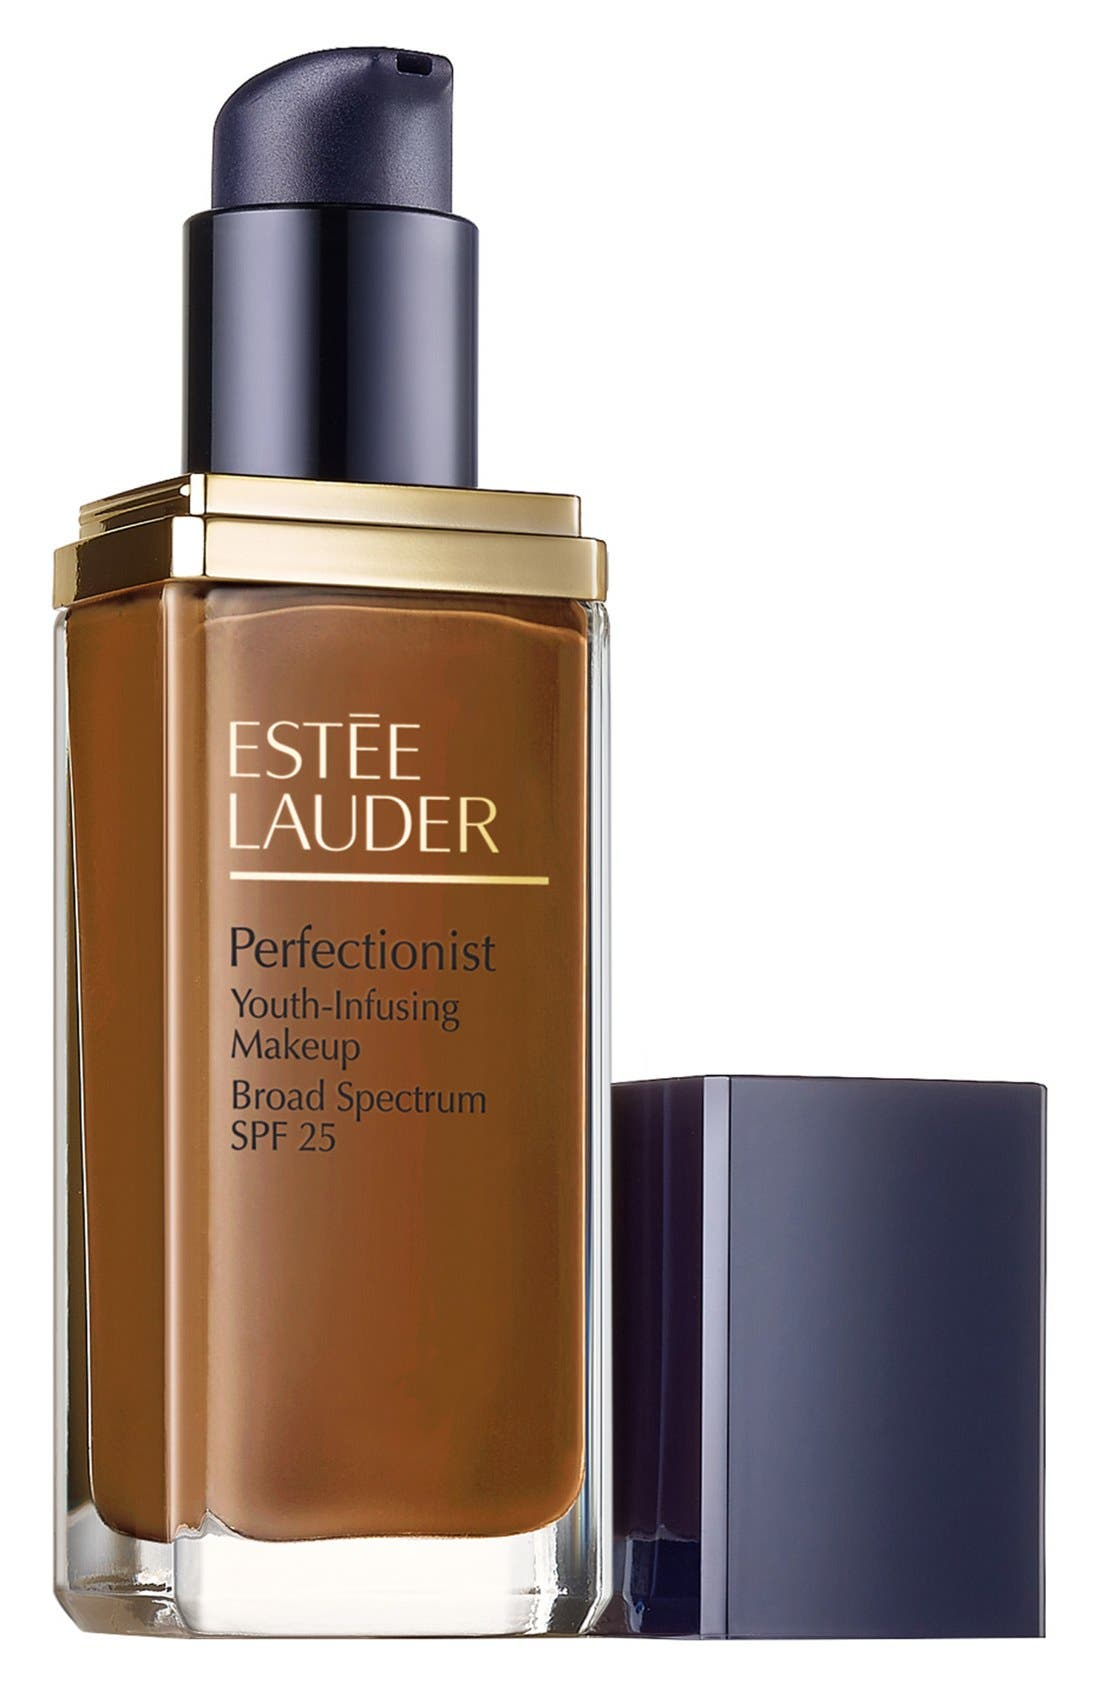 Estee Lauder Perfectionist Youth Infusing Makeup Foundation Broad Spectrum Spf 25 Nordstrom